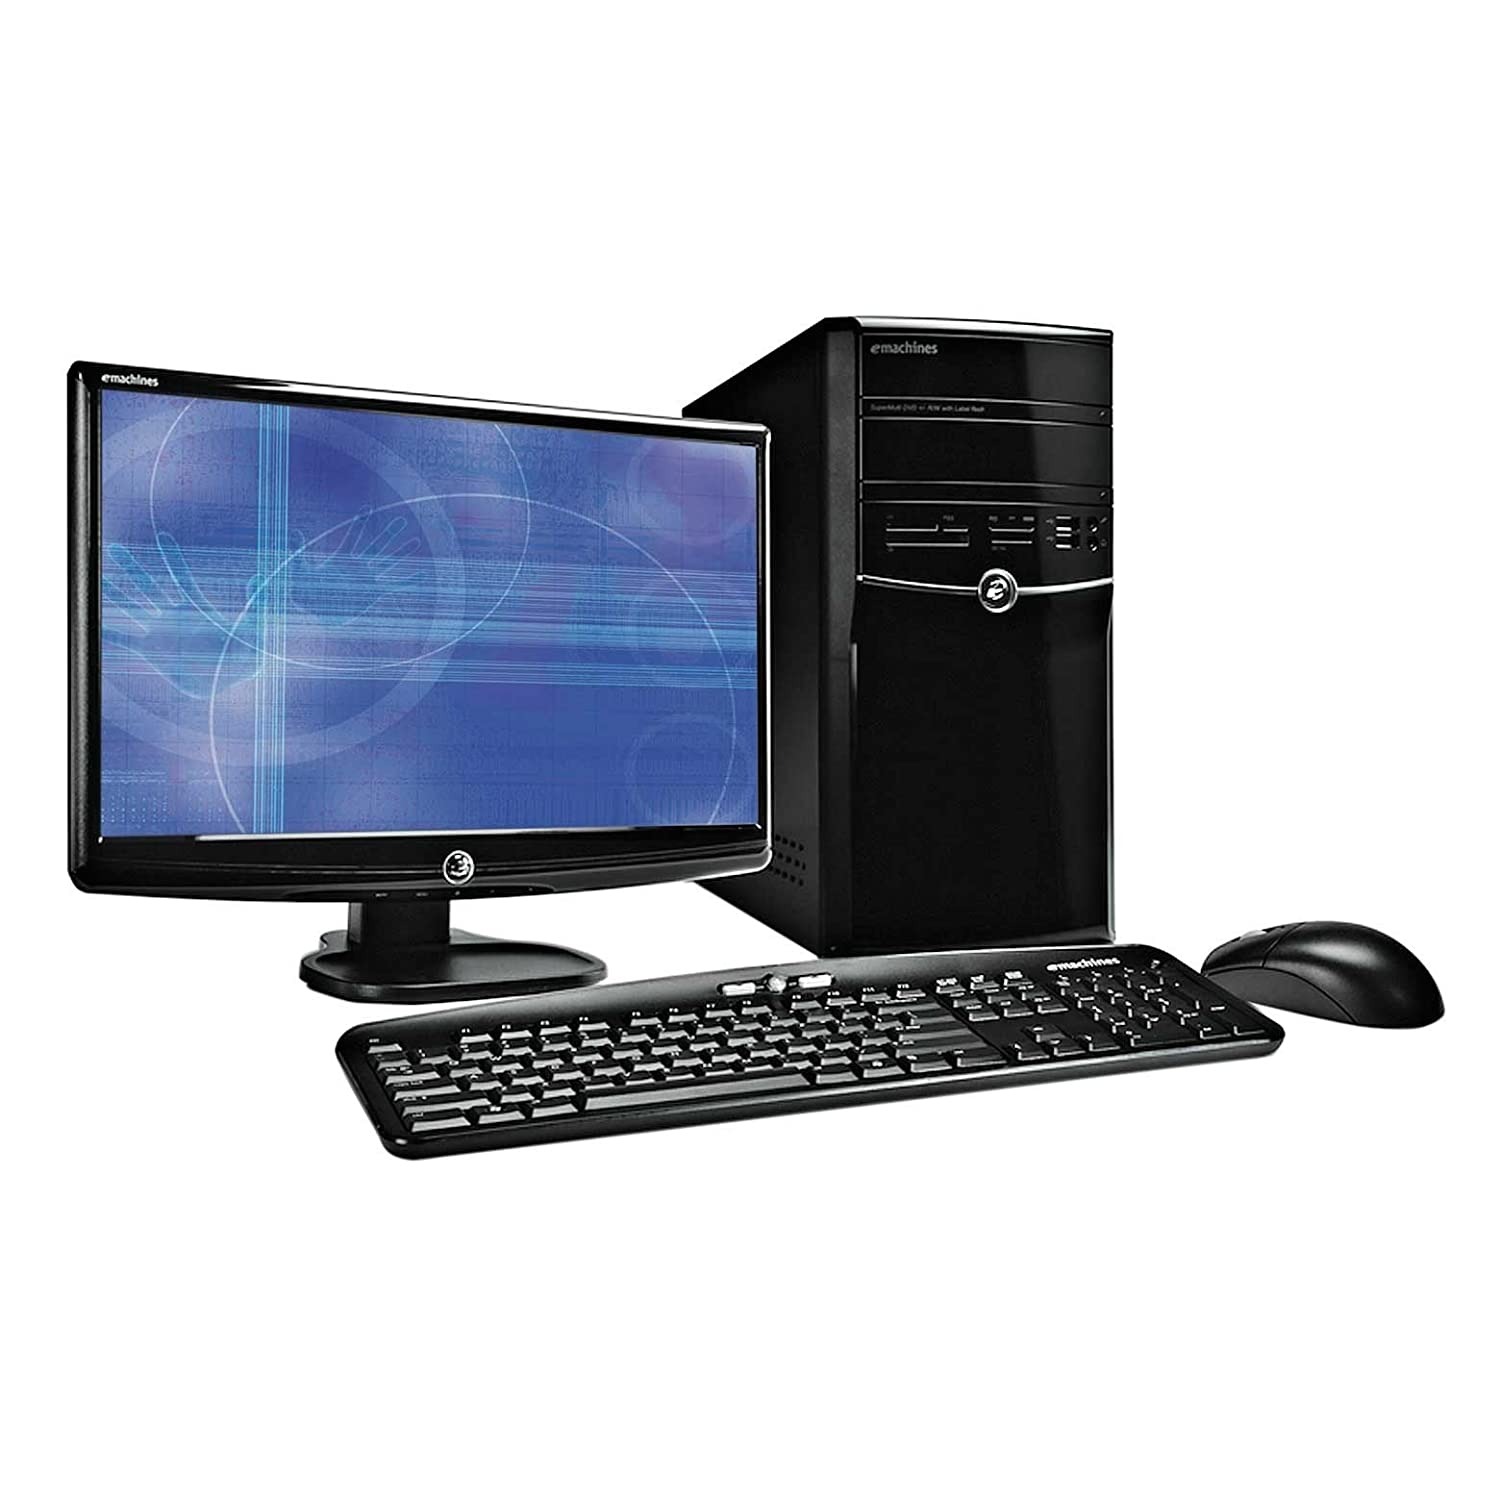 ACER ET1850 DRIVERS FOR WINDOWS XP